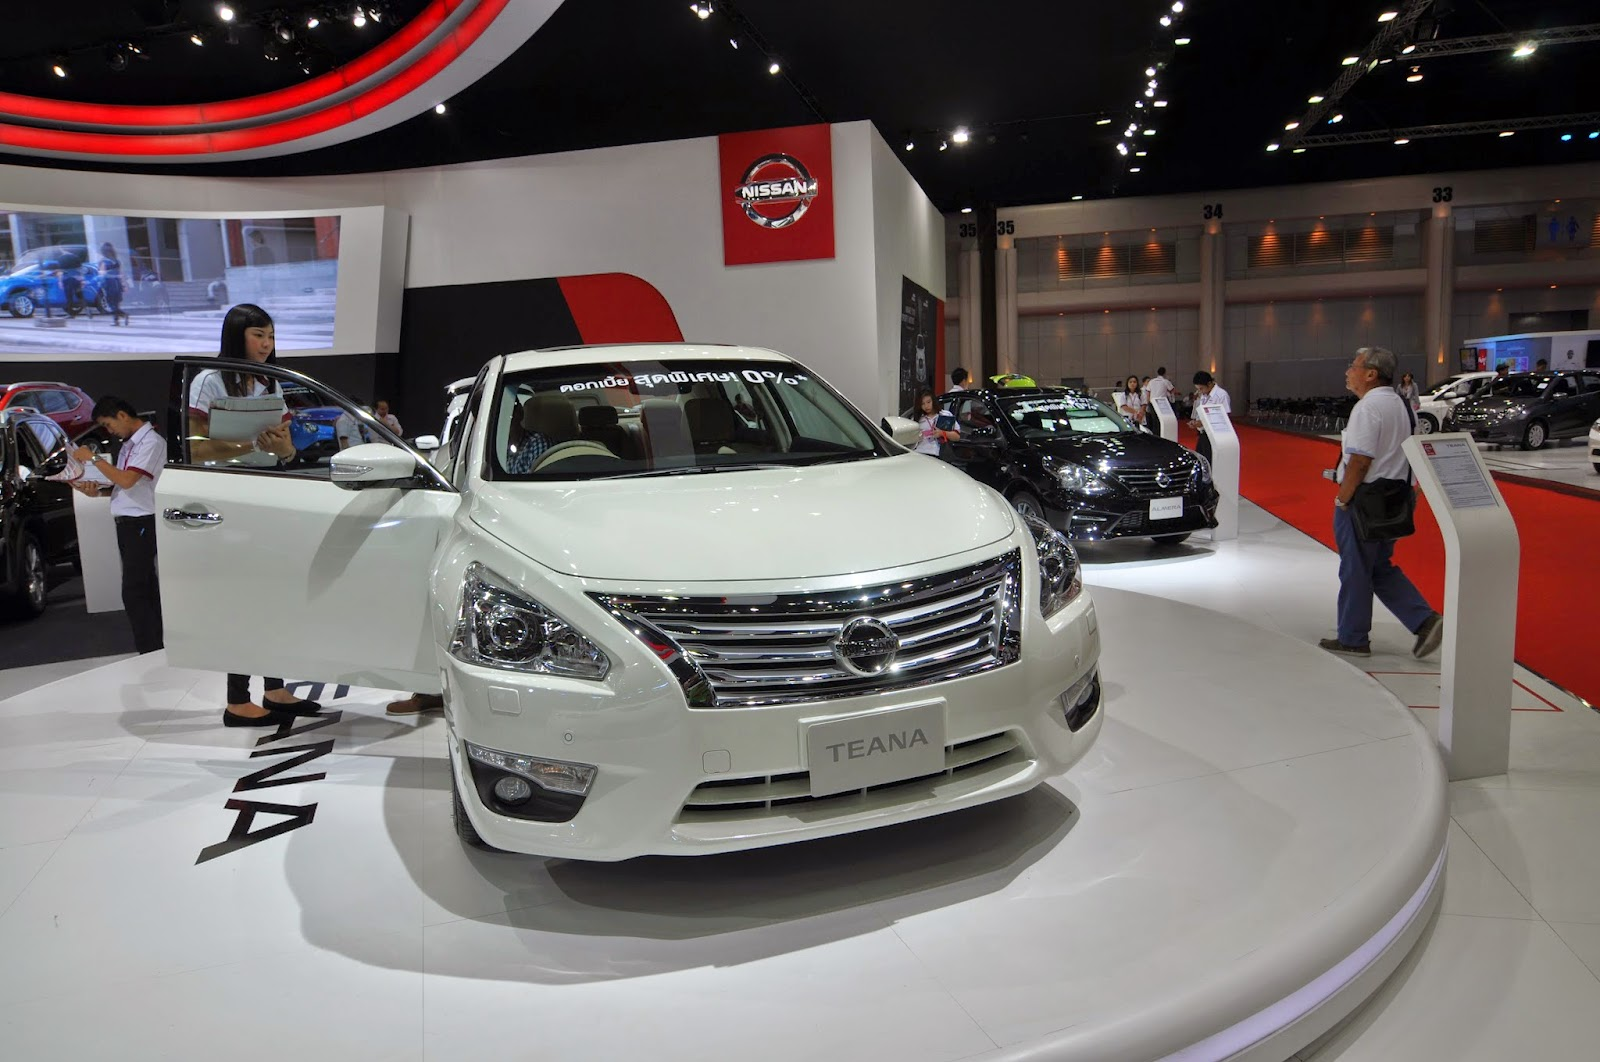 The nissan teana don t know why the cars here are looking good i think is the lighting punya effect lah those car in the motor show really look